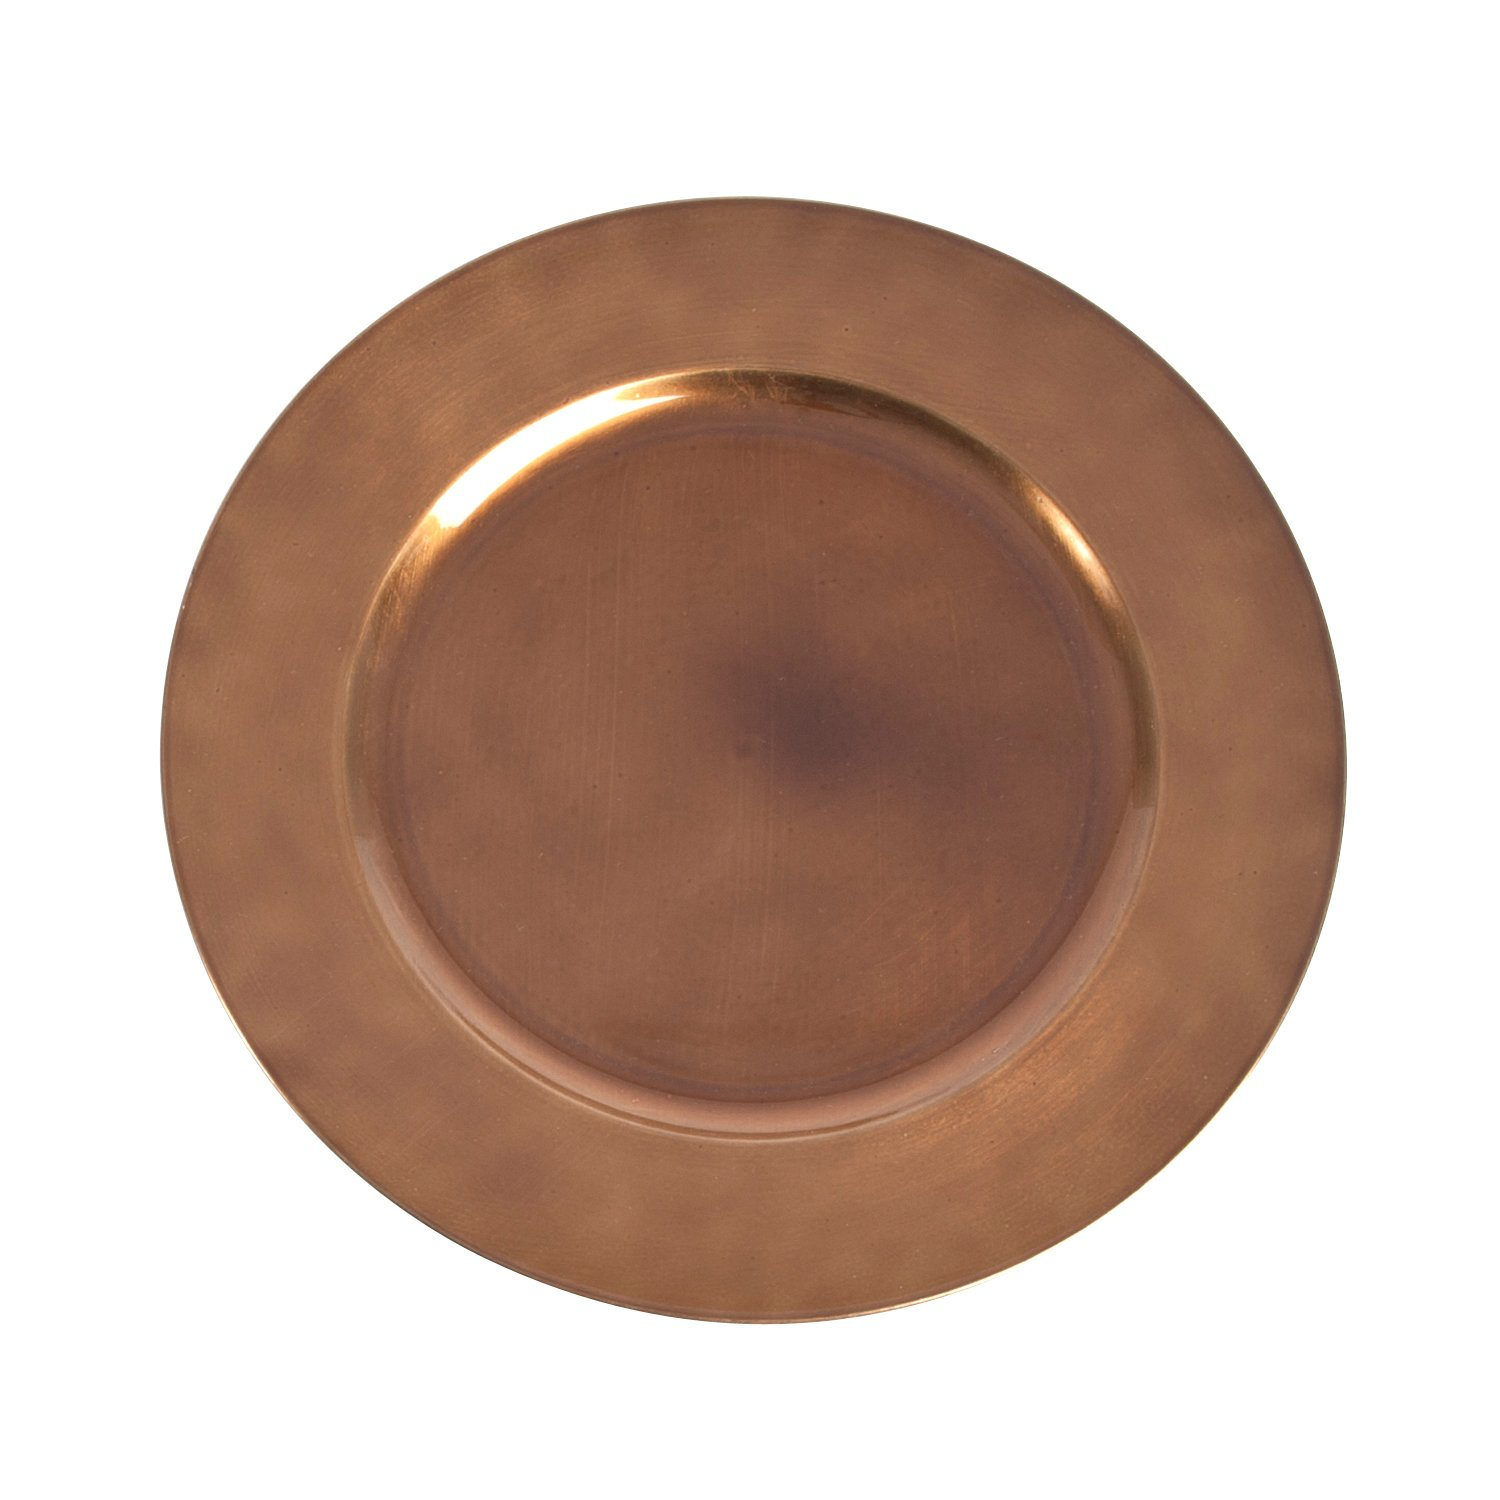 SARO LIFESTYLE CH001.CO13R Classic Design Charger Plate, Copper, 13'' (Set of 4 pcs)